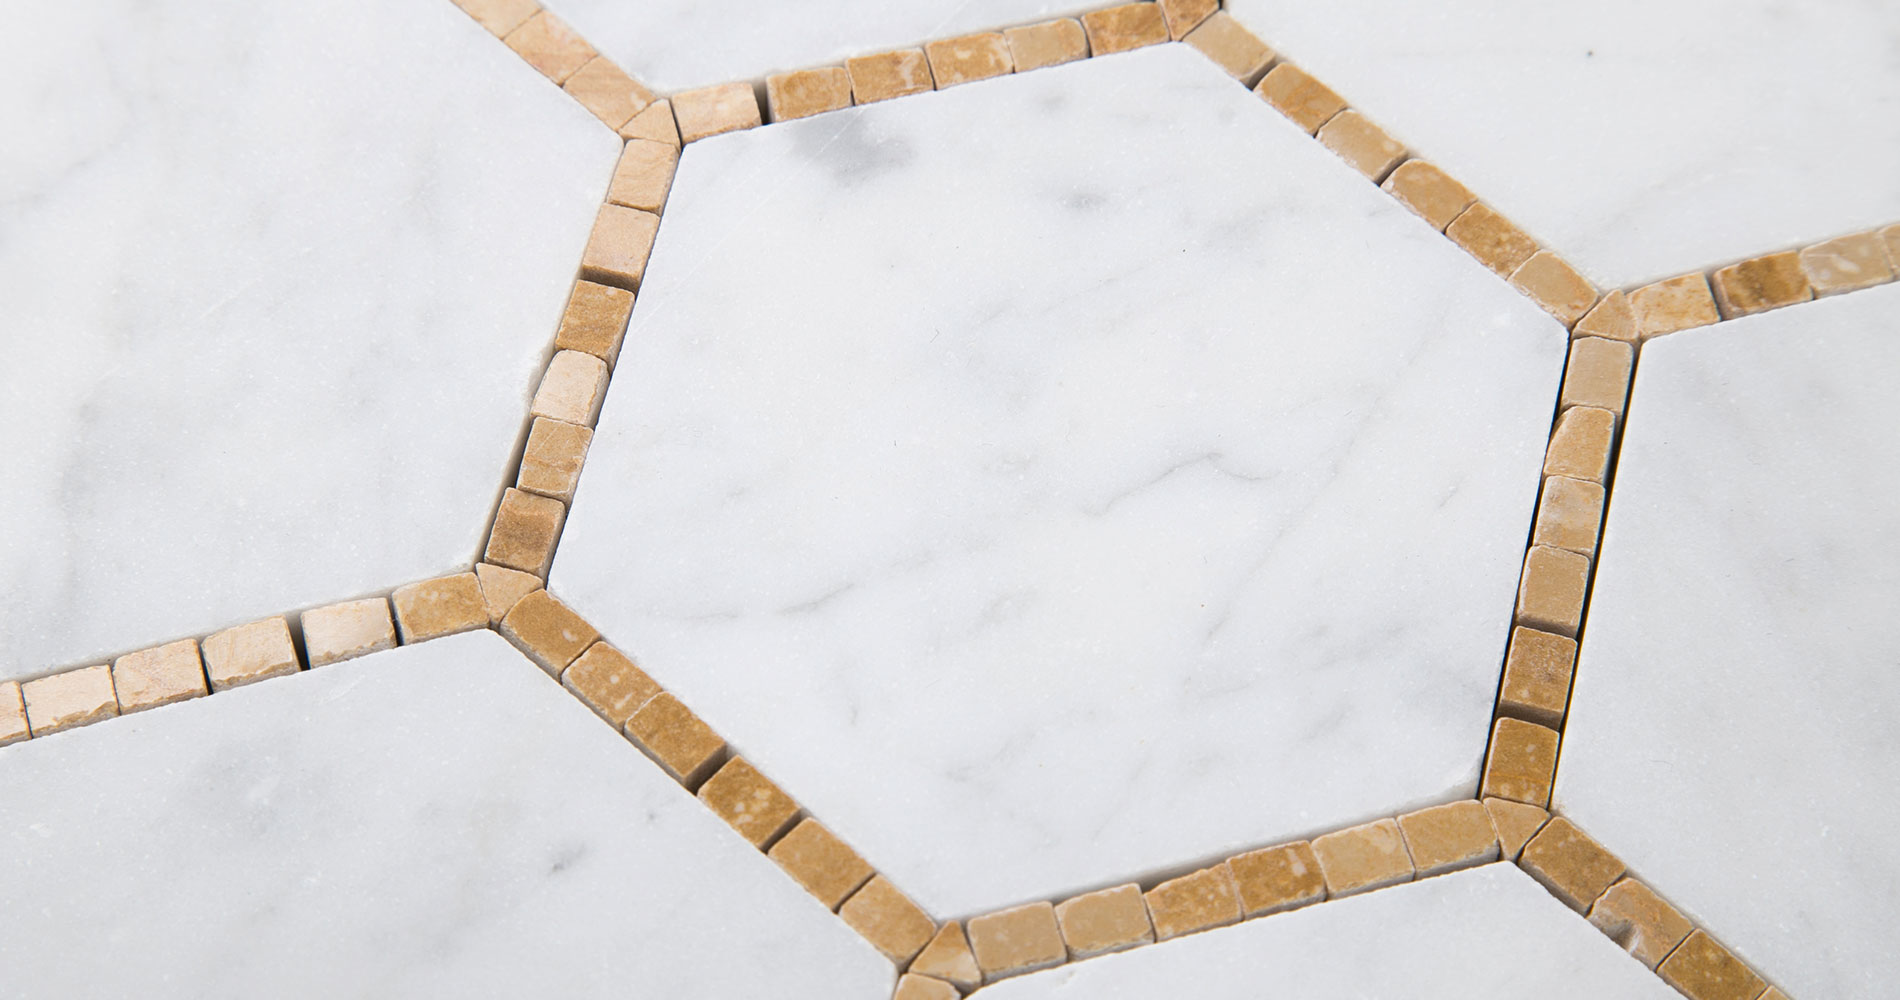 centurymosaic-3-inch-Hexagon-Marble-Mosaic-Tile-Collection-2